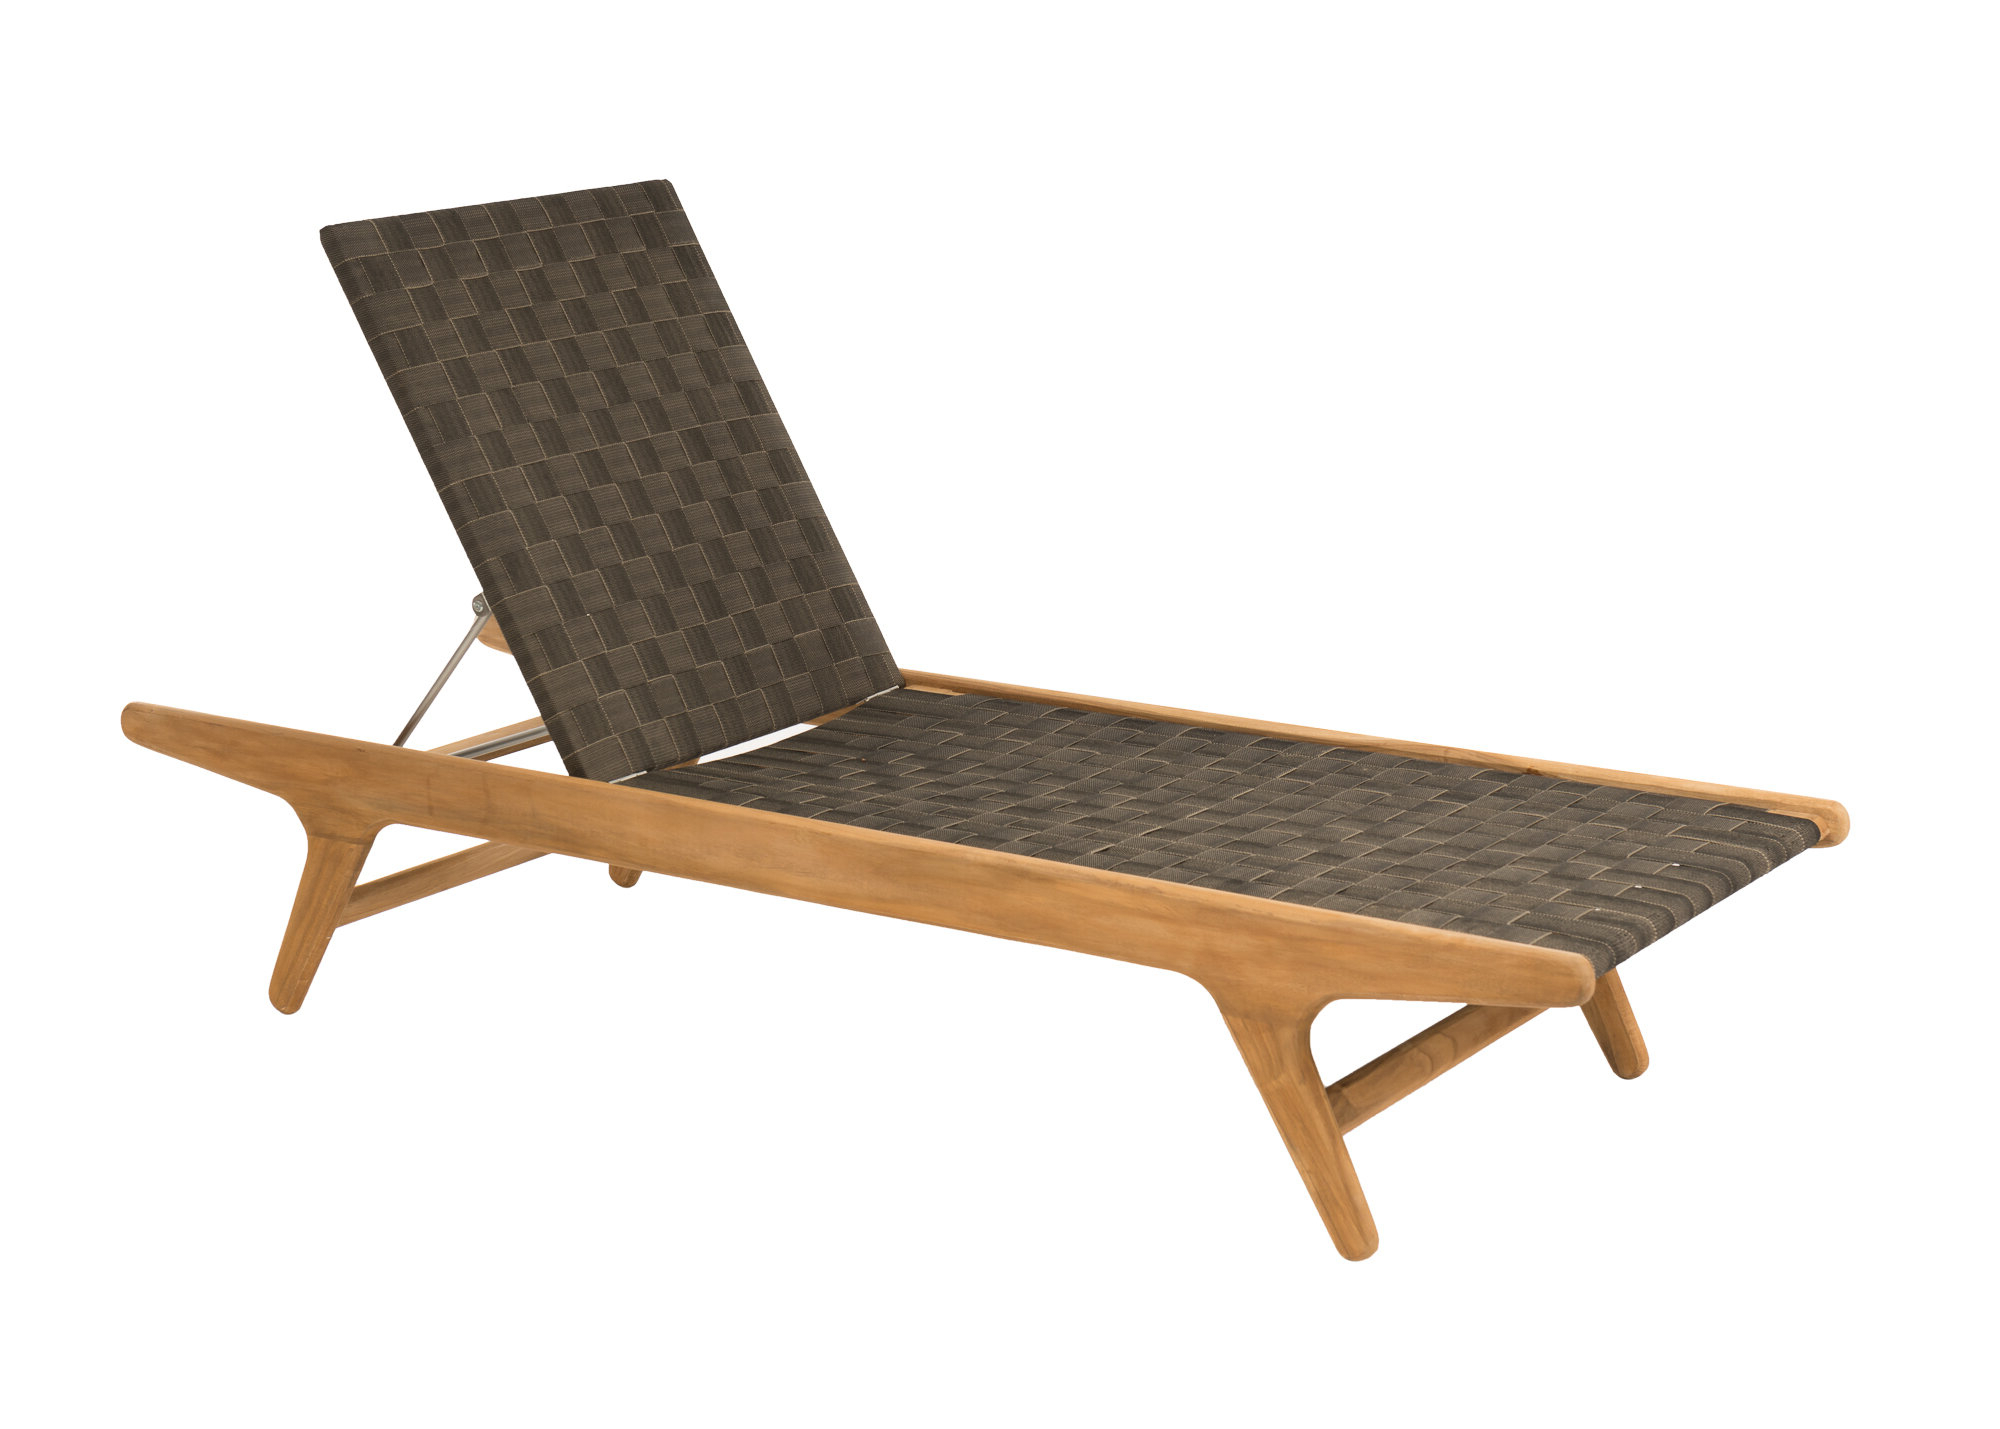 Popular Teak Chaise Loungers Within Staci Reclining Teak Chaise Lounge (Gallery 1 of 25)